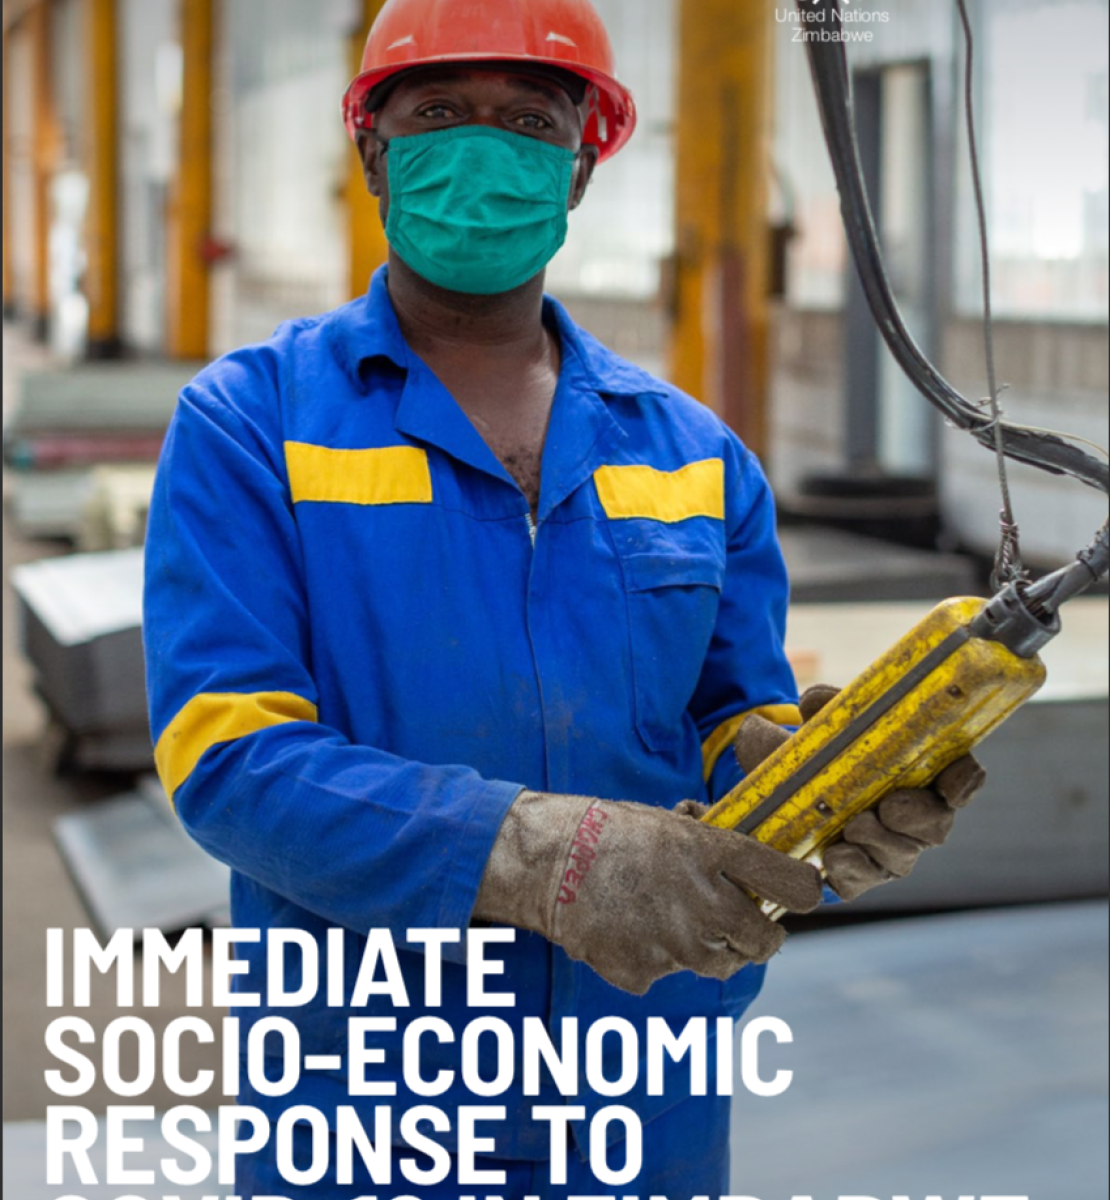 """Cover shows the title, """"Immediate Socio-Economic Response to COVID-19 in Zimbabwe,"""" over an image of a machine operator wearing a protective face mask as he works."""